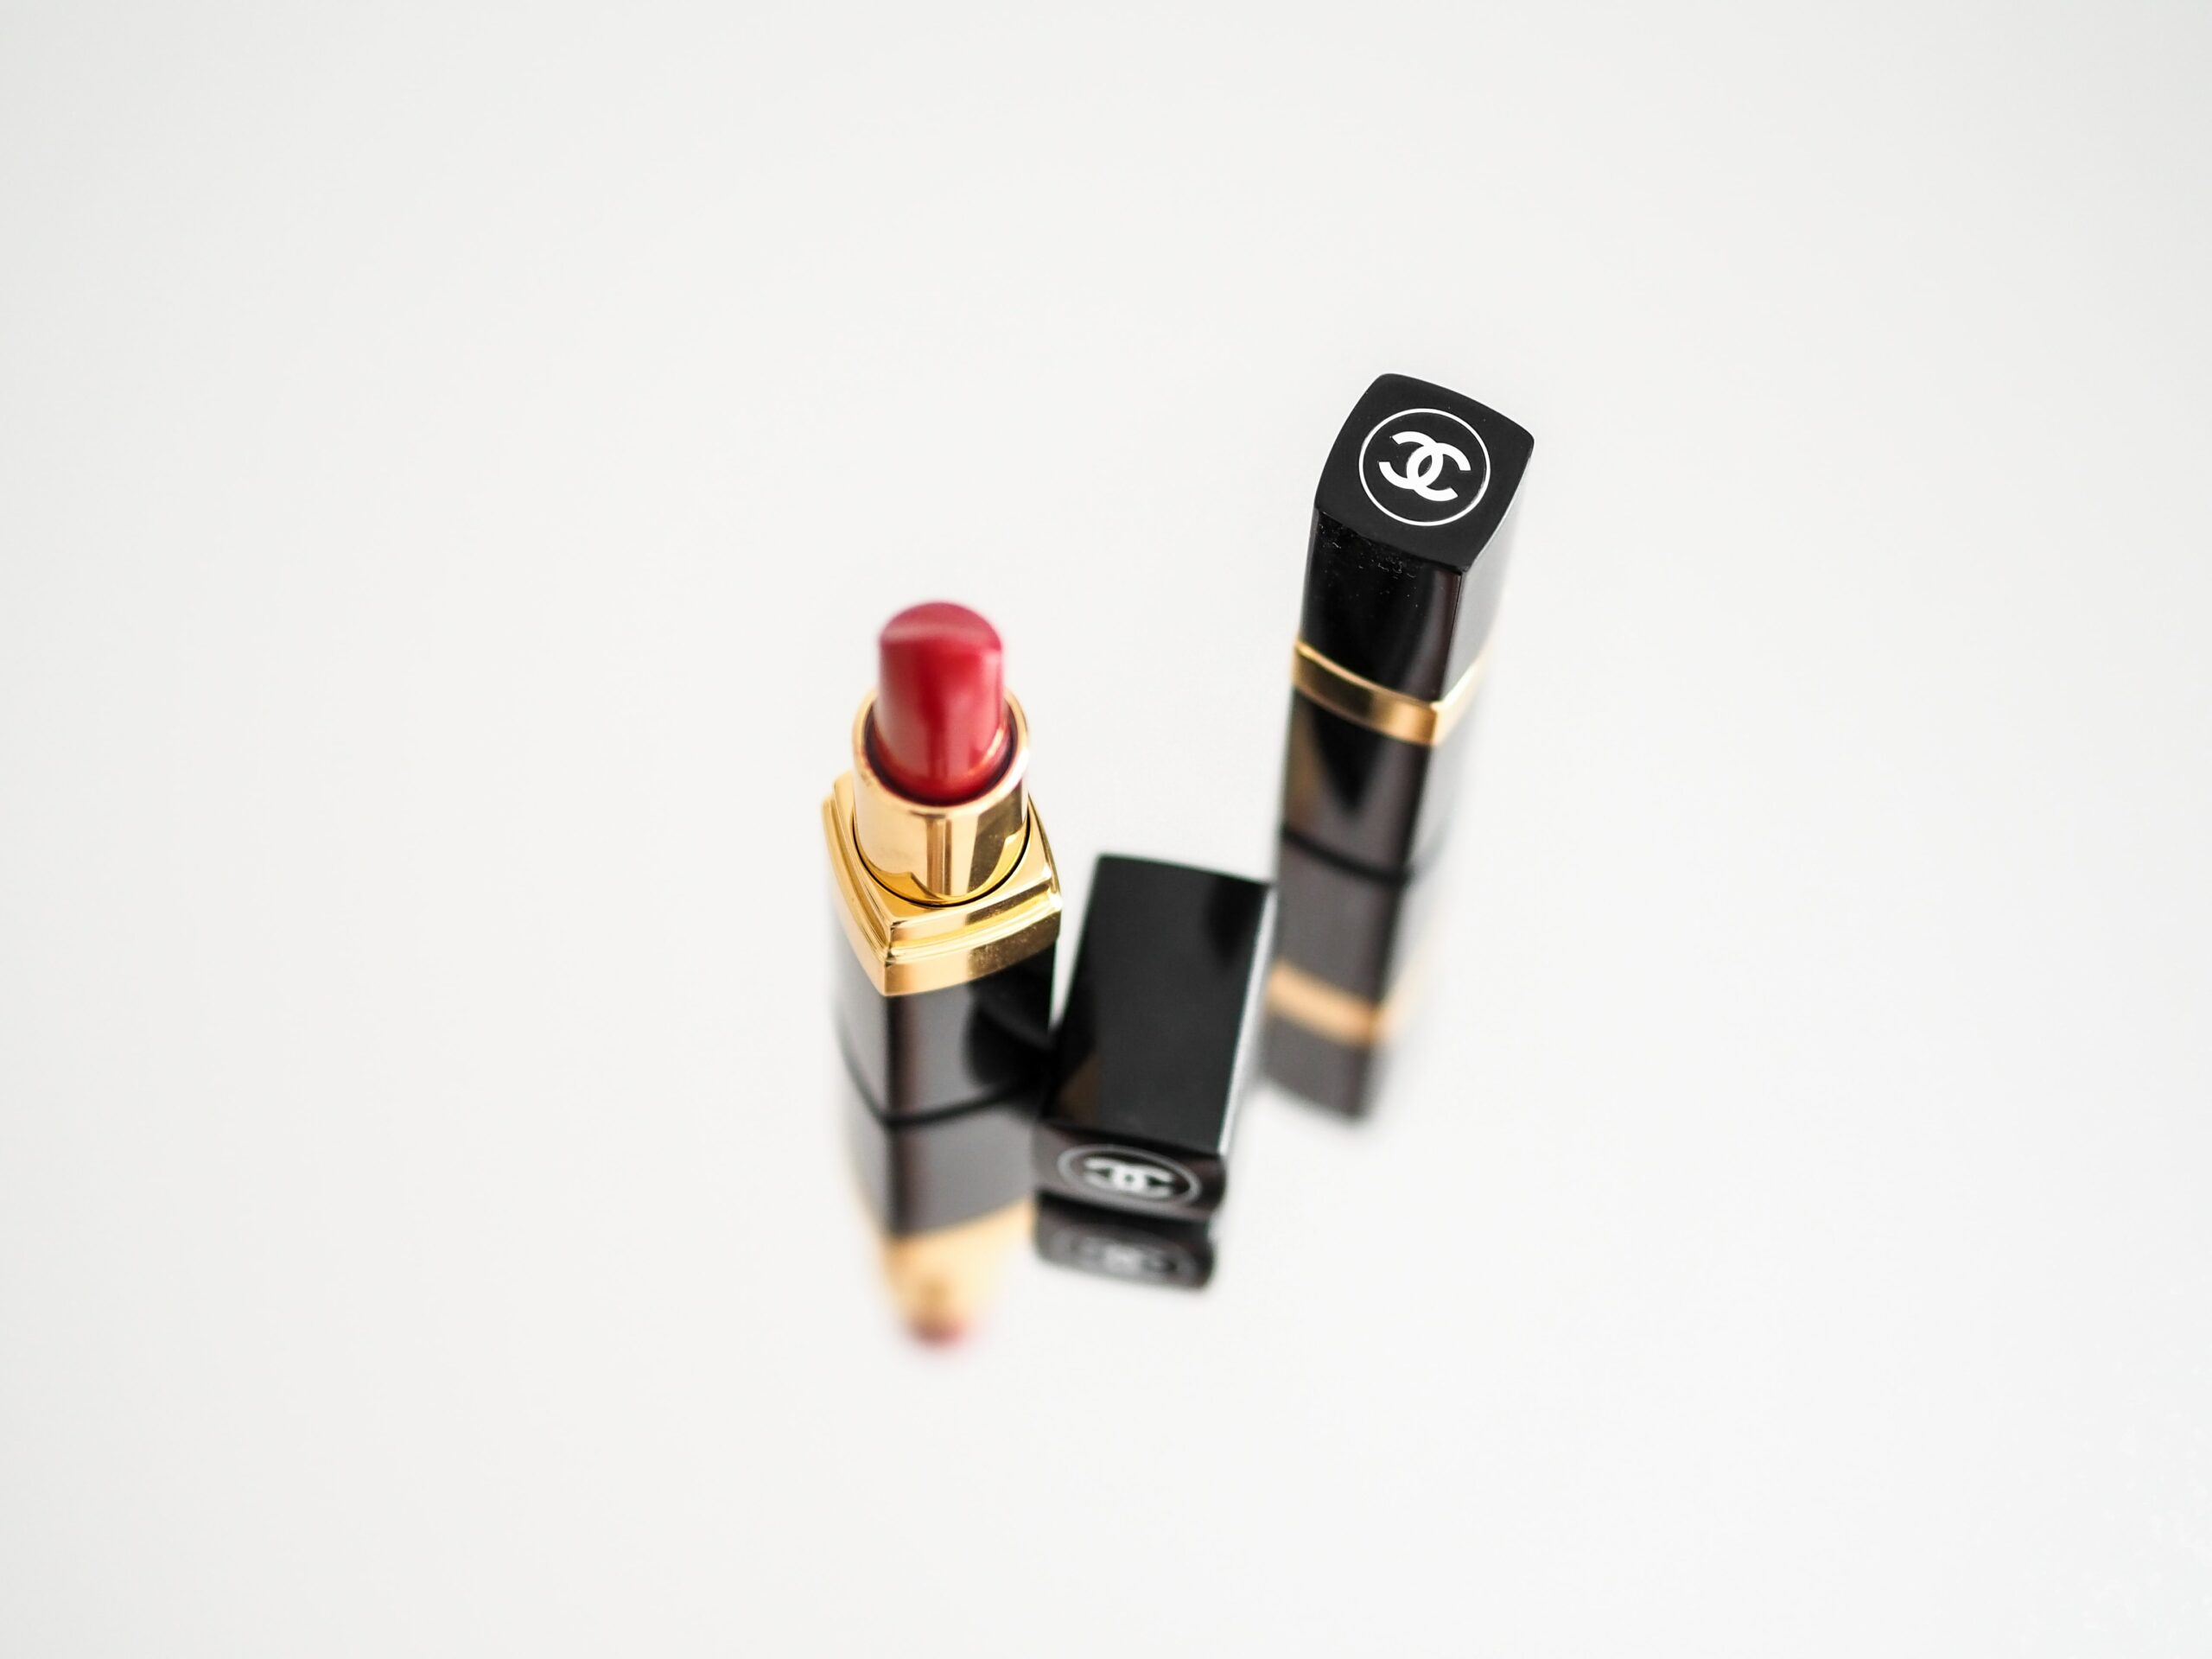 10 Best Lipstick Brands to Try in 2021